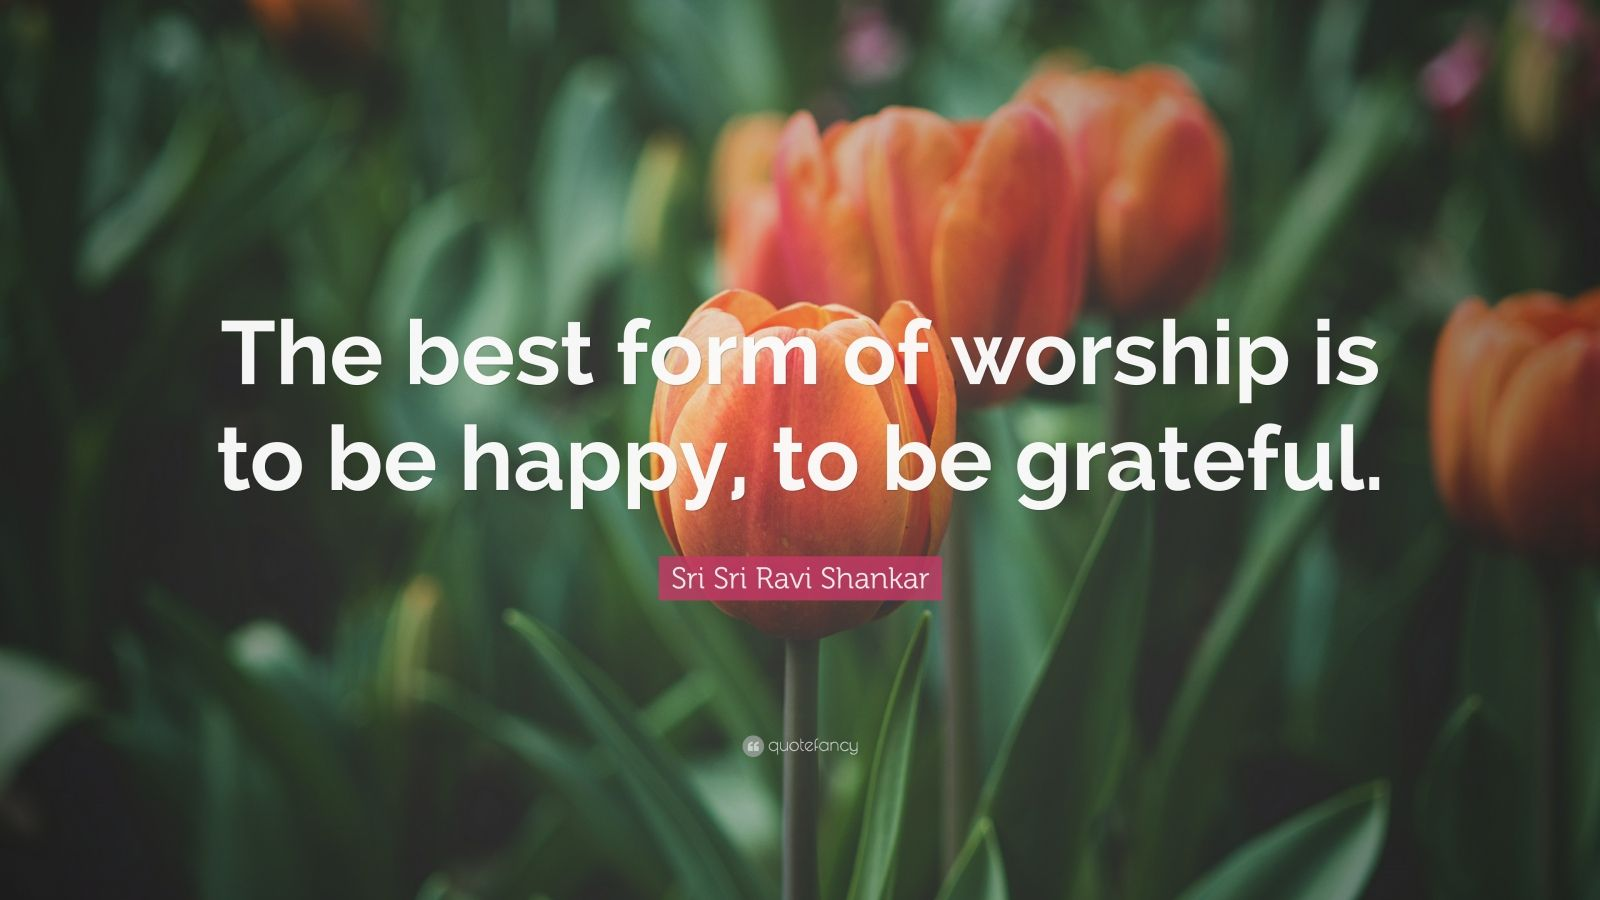 """Sri Sri Ravi Shankar Quote: """"The best form of worship is to be happy, to be grateful."""""""